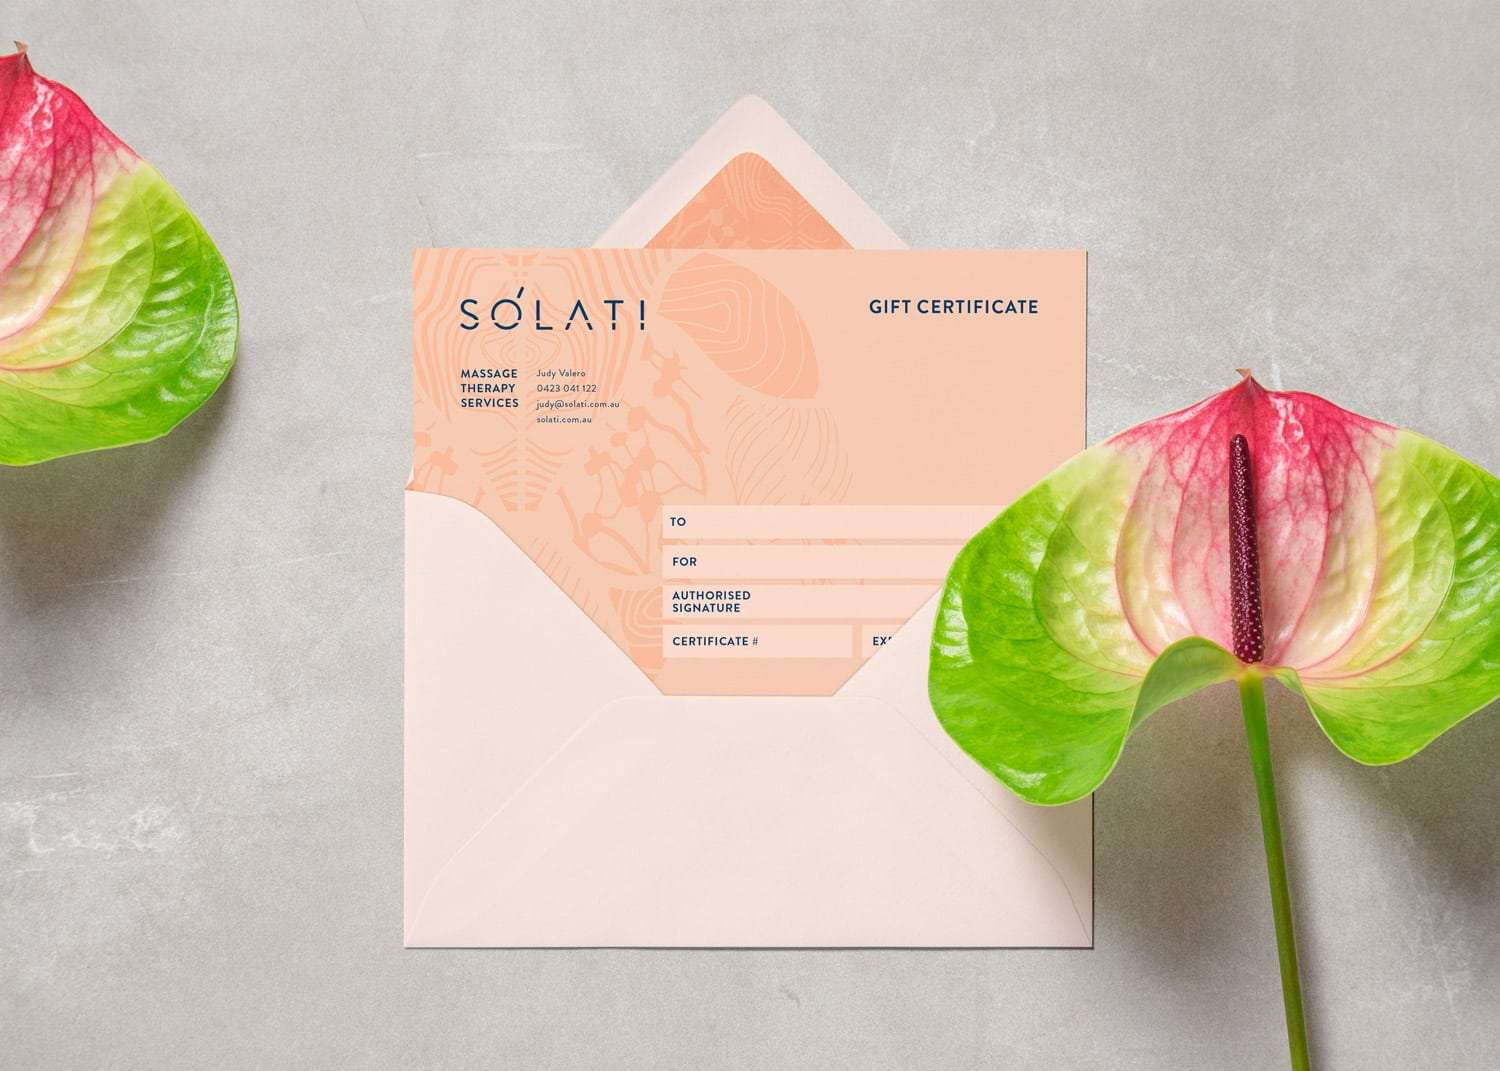 Solati oncology massage services identity by Flux Visual Communication